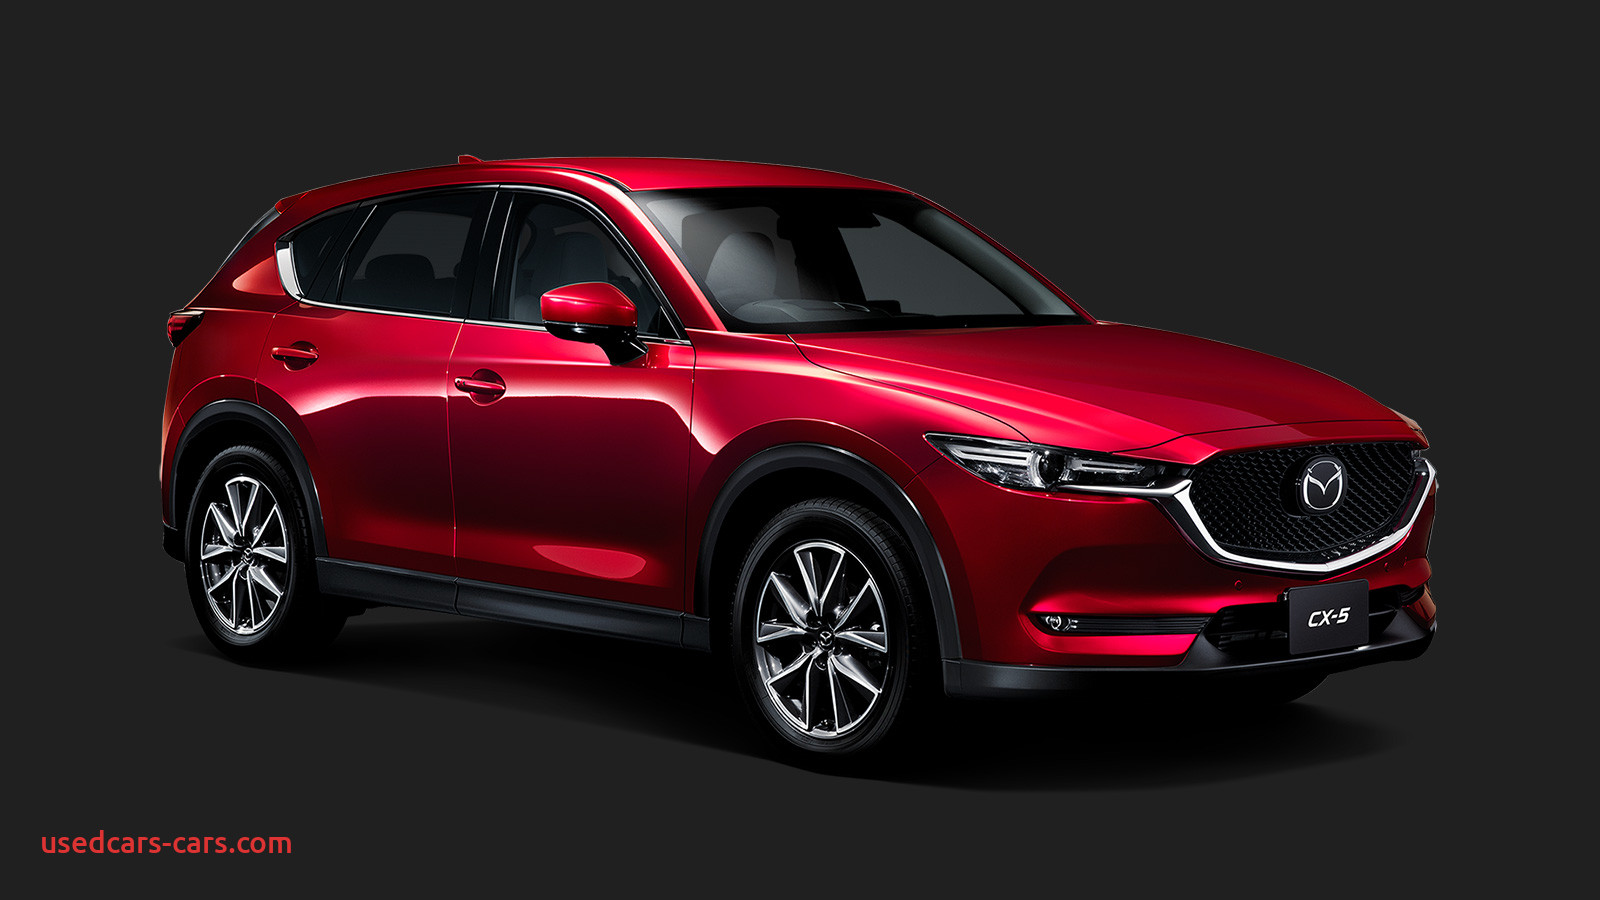 Mazda Cx5 Price Beautiful 2017 Mazda Cx 5 Specifications and Prices Revealed for